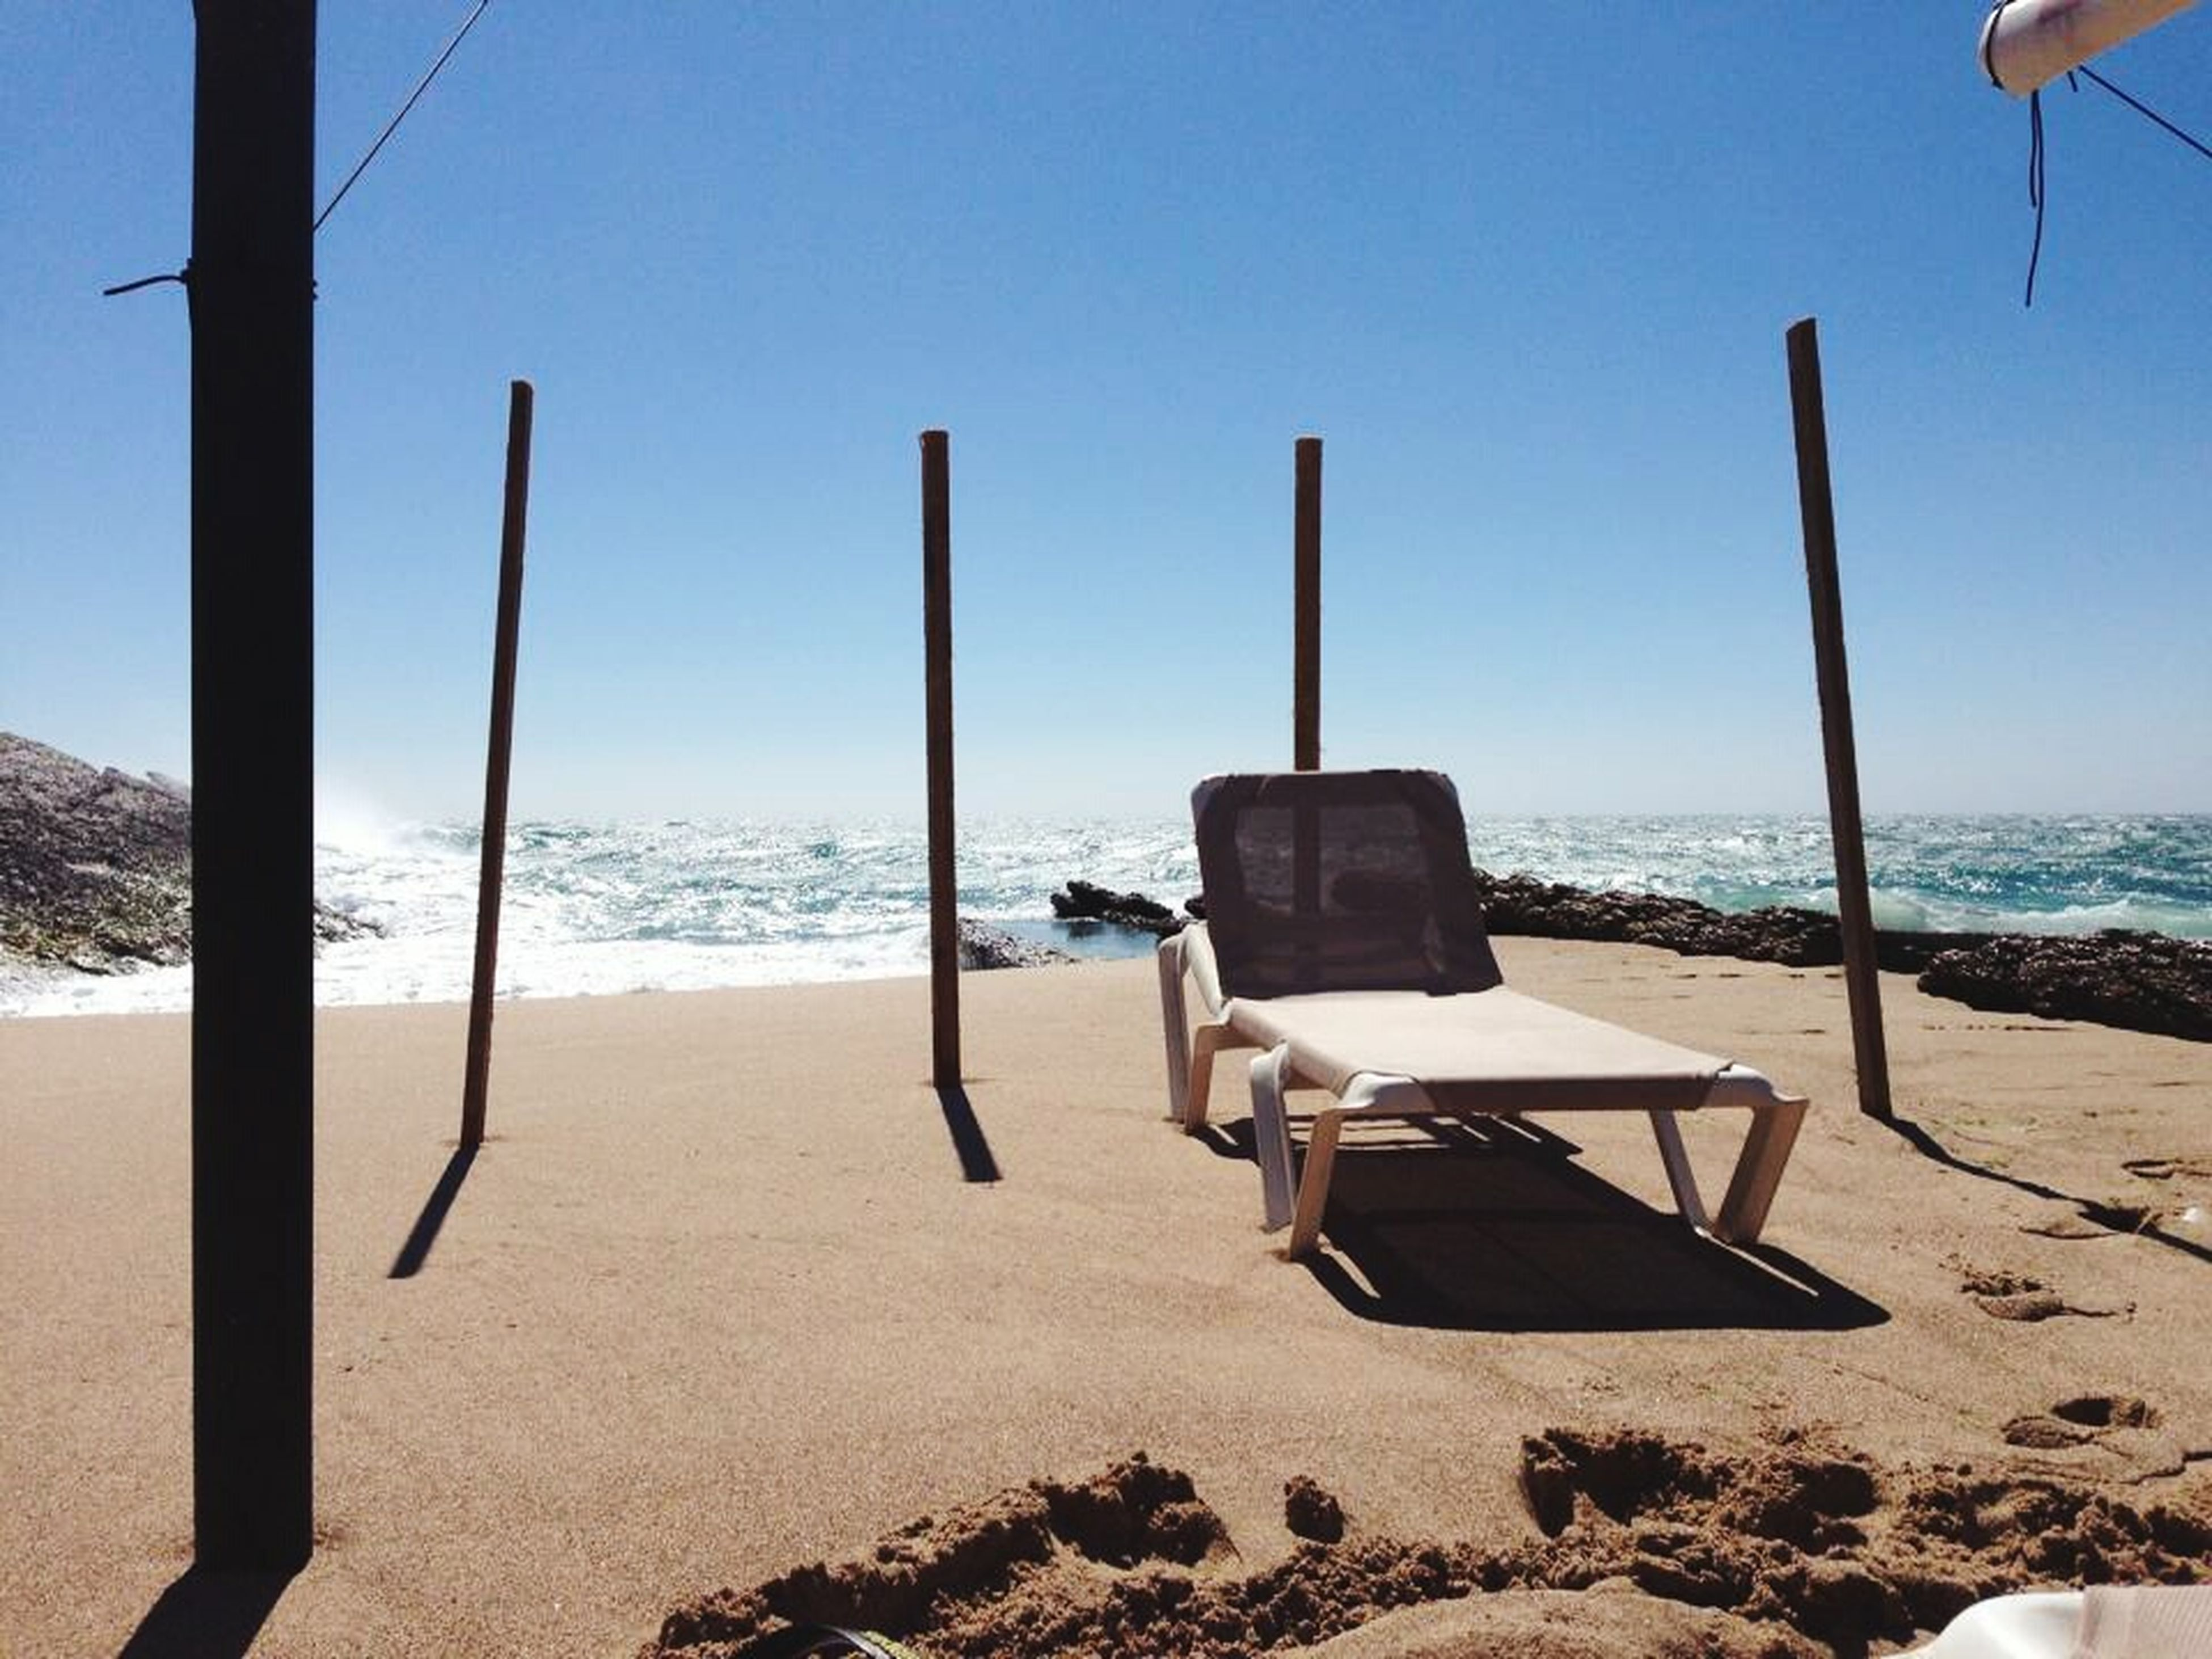 sea, beach, sand, horizon over water, water, clear sky, shore, absence, sunlight, sky, shadow, tranquil scene, tranquility, empty, day, chair, outdoors, scenics, nature, blue